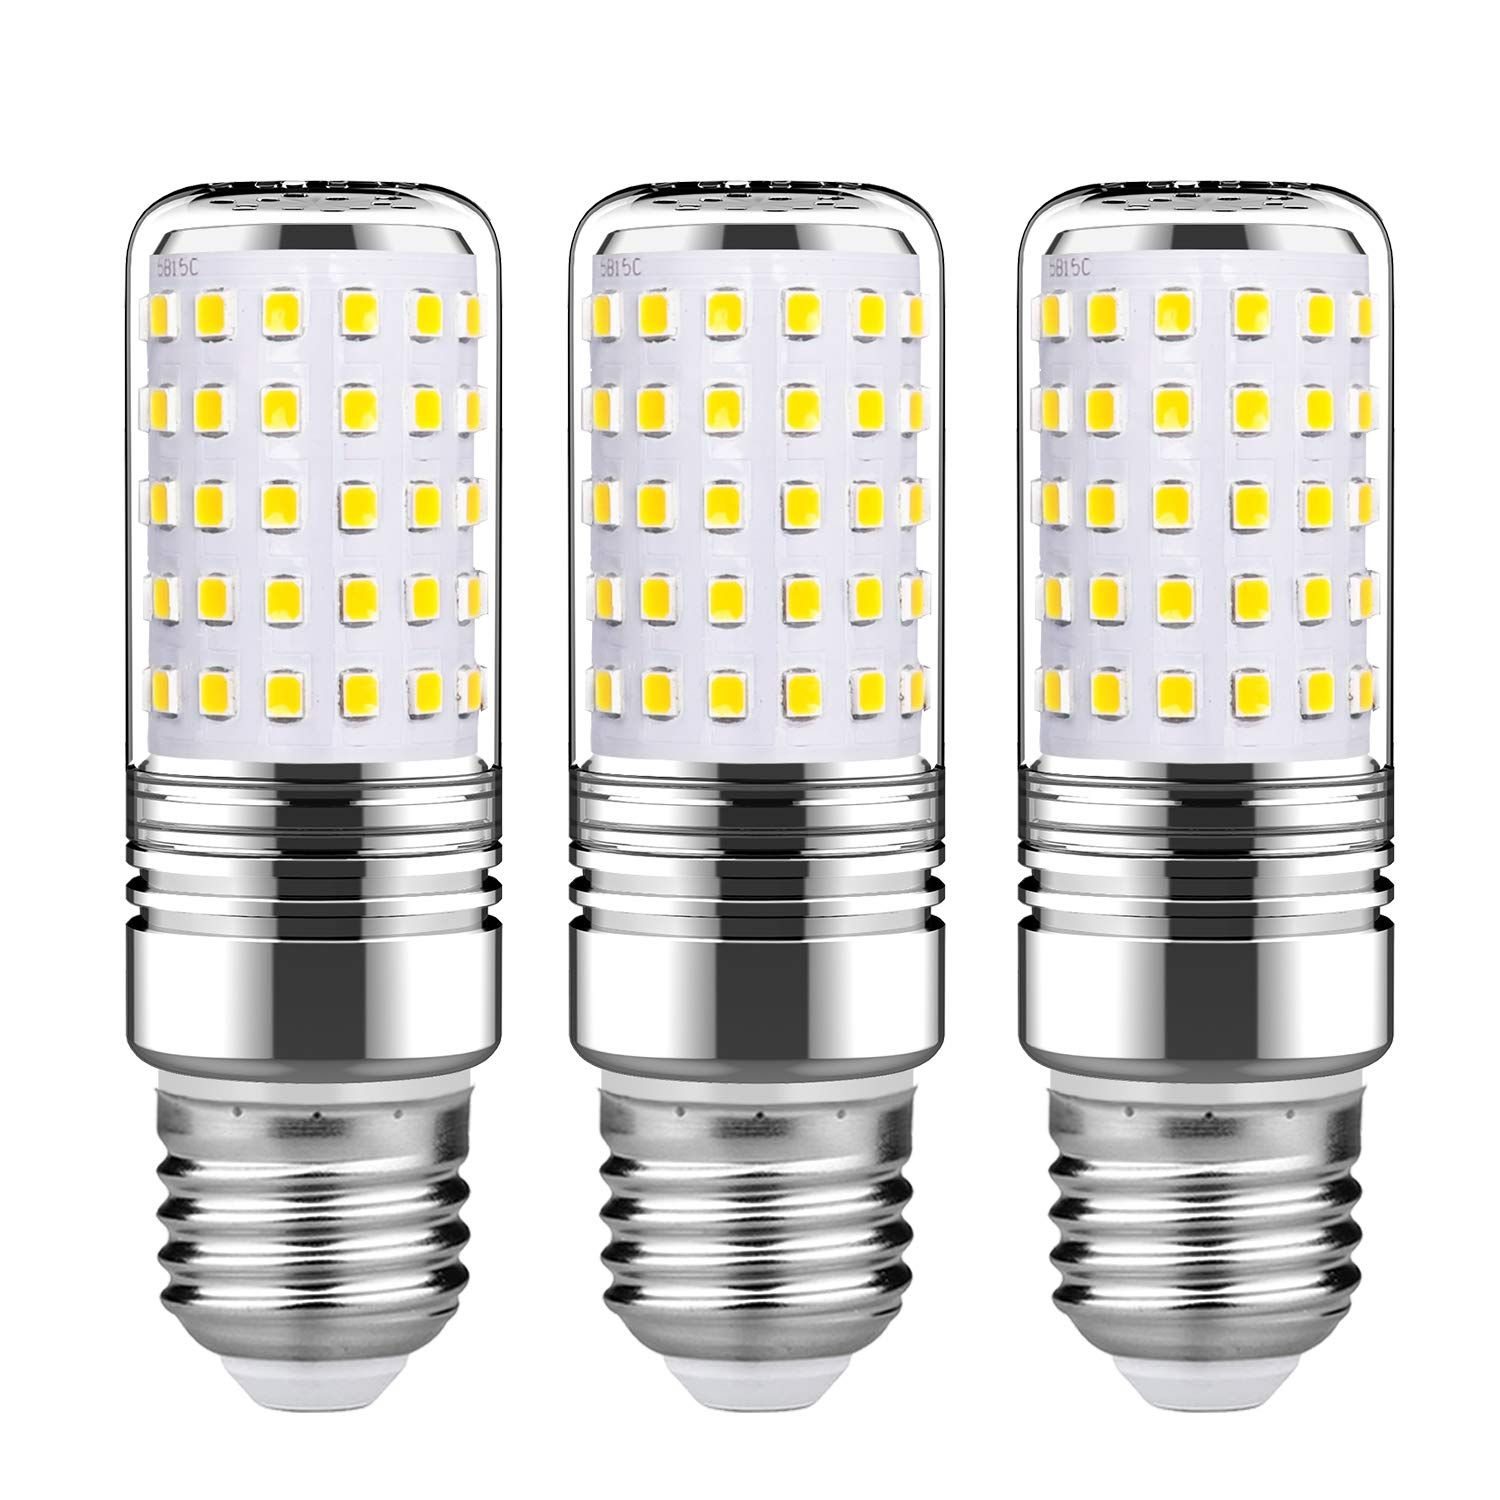 Gezee 15w Led Cylindrical Bulb E26 Led Candelabra Light Bulbs 120 Watt Equivalent1500lm Daylight White 600 Led Chandelier Candelabra Light Led Candelabra Bulbs